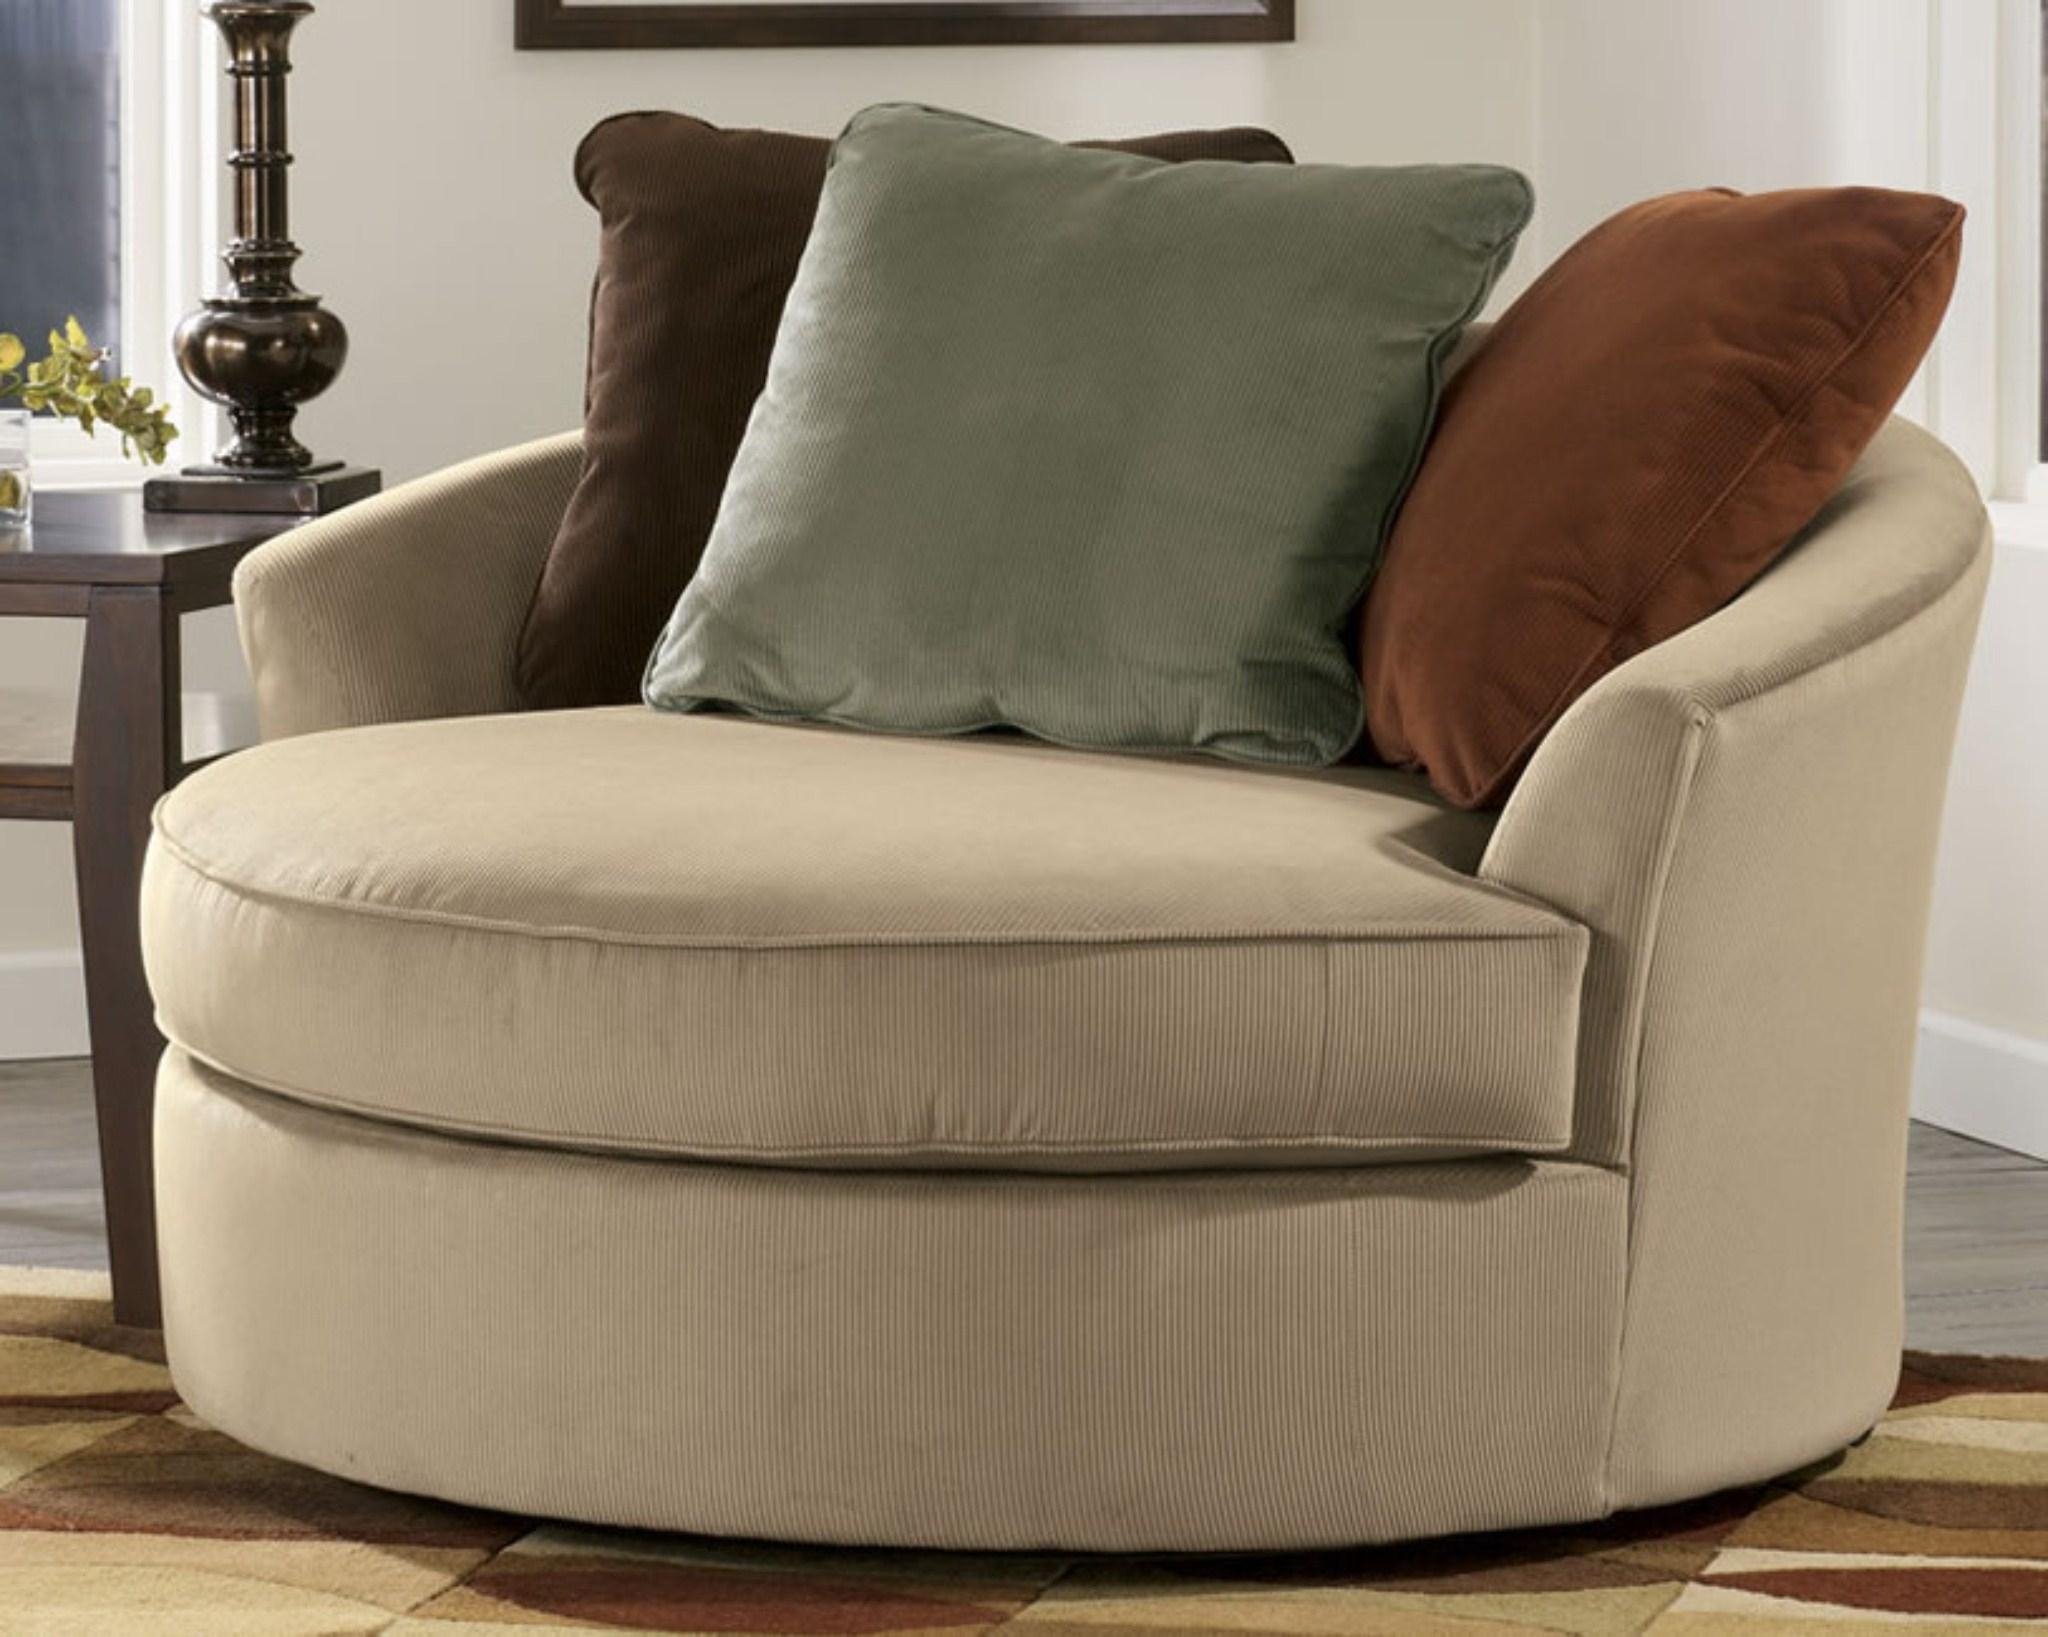 Oversized Sofa Chairs Oversized Chaise Lounge Sofa Thesofa